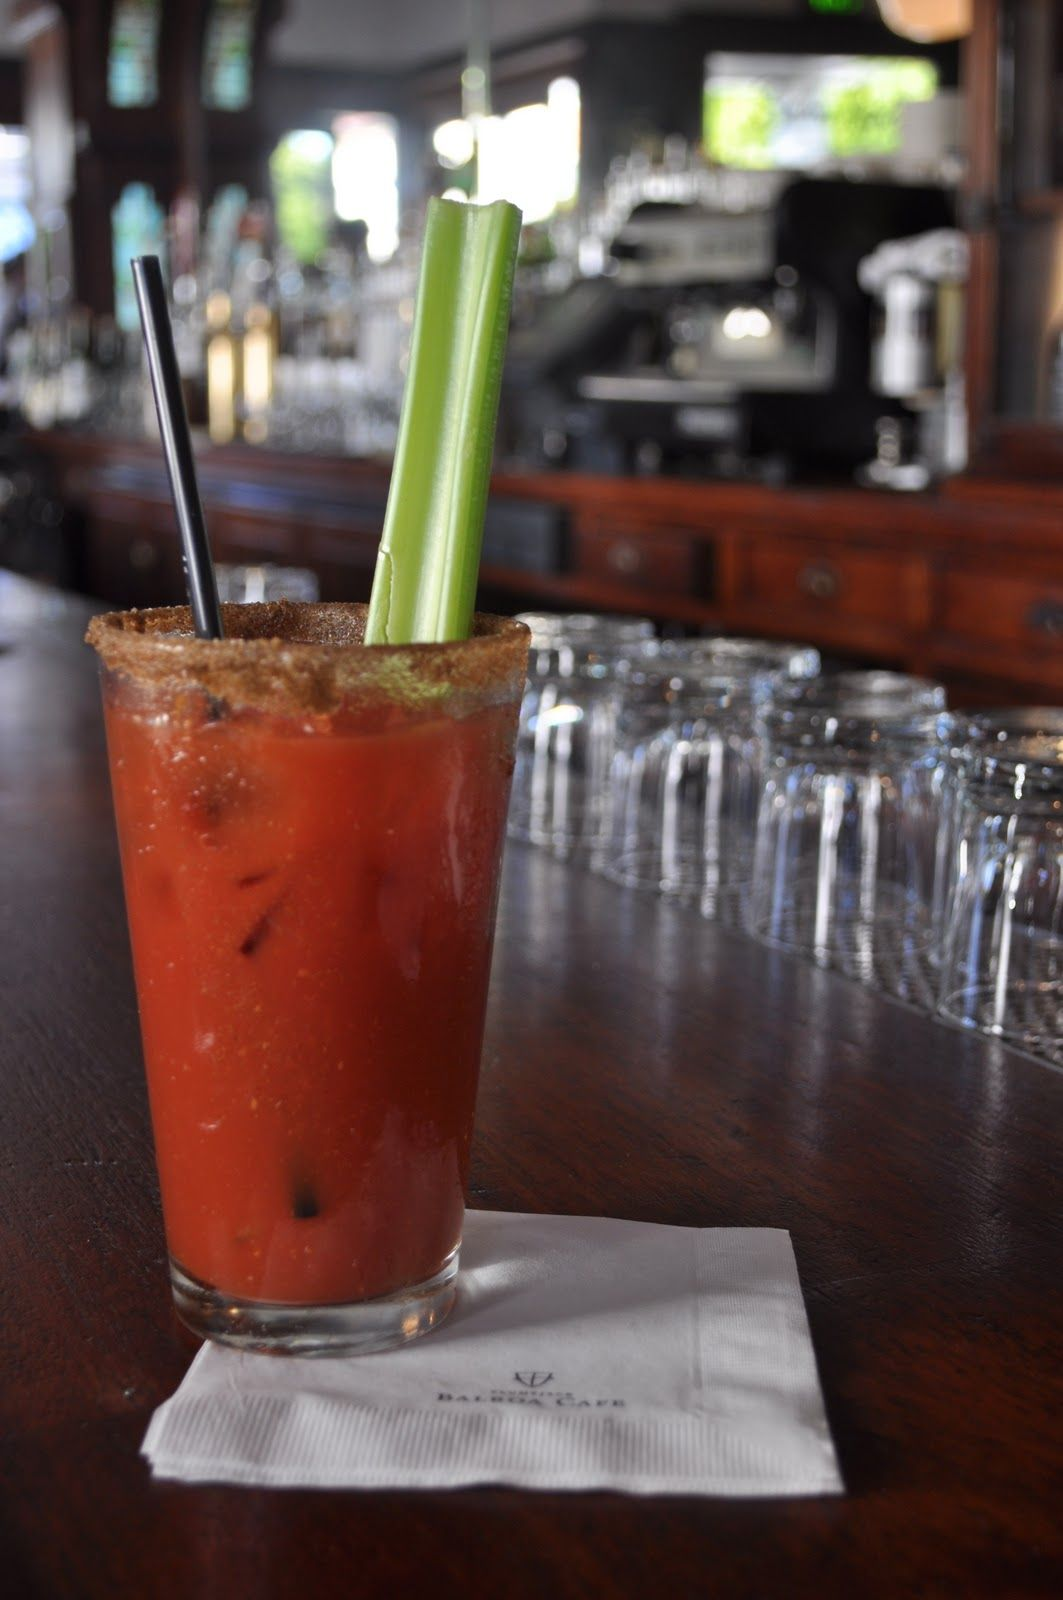 My favorite Bloody Mary in San Francisco, from Balboa Cafe